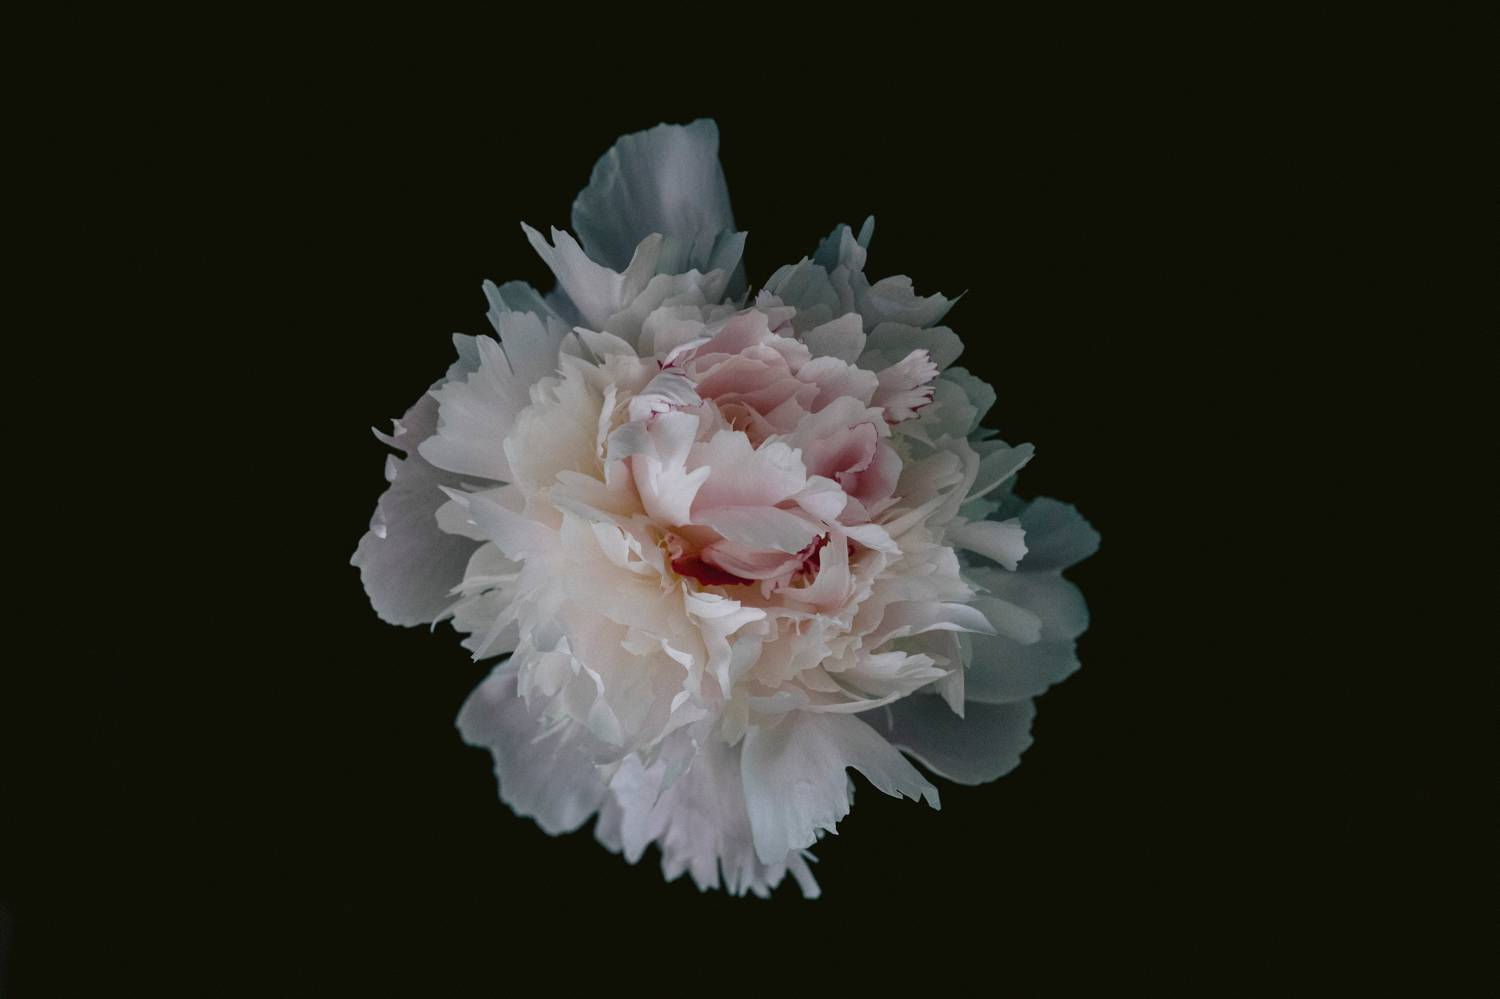 A studio portrait of a blooming rose on a black background. Joshua Wyborn created this fine art photograph as part of his online gallery of canvases and high-quality prints for sale.